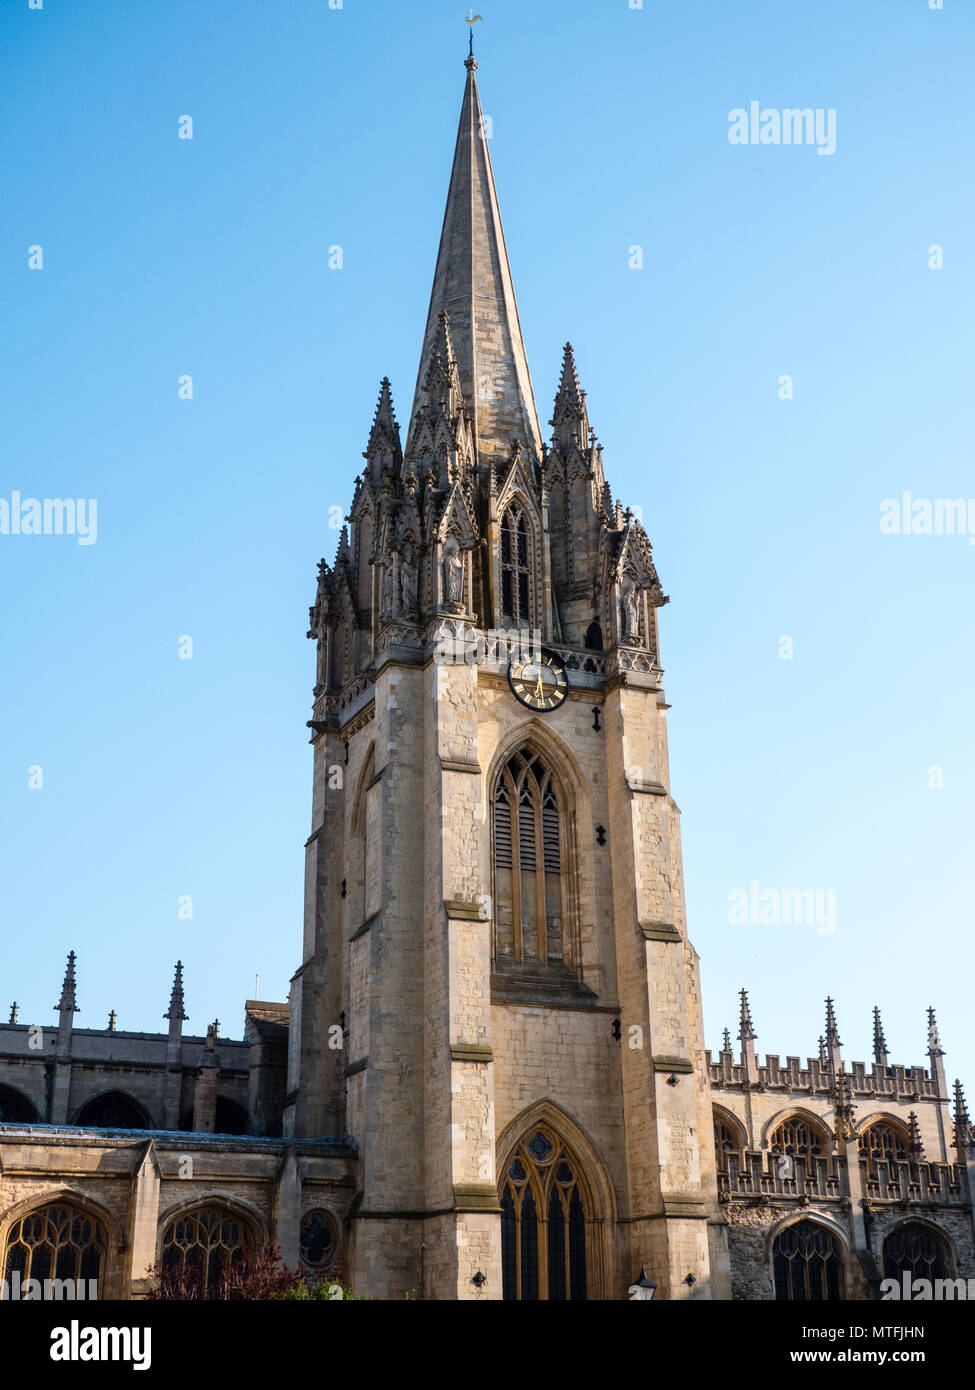 University Church of St Mary the Virgin, Oxford, Oxfordshire, England, UK, GB. - Stock Image